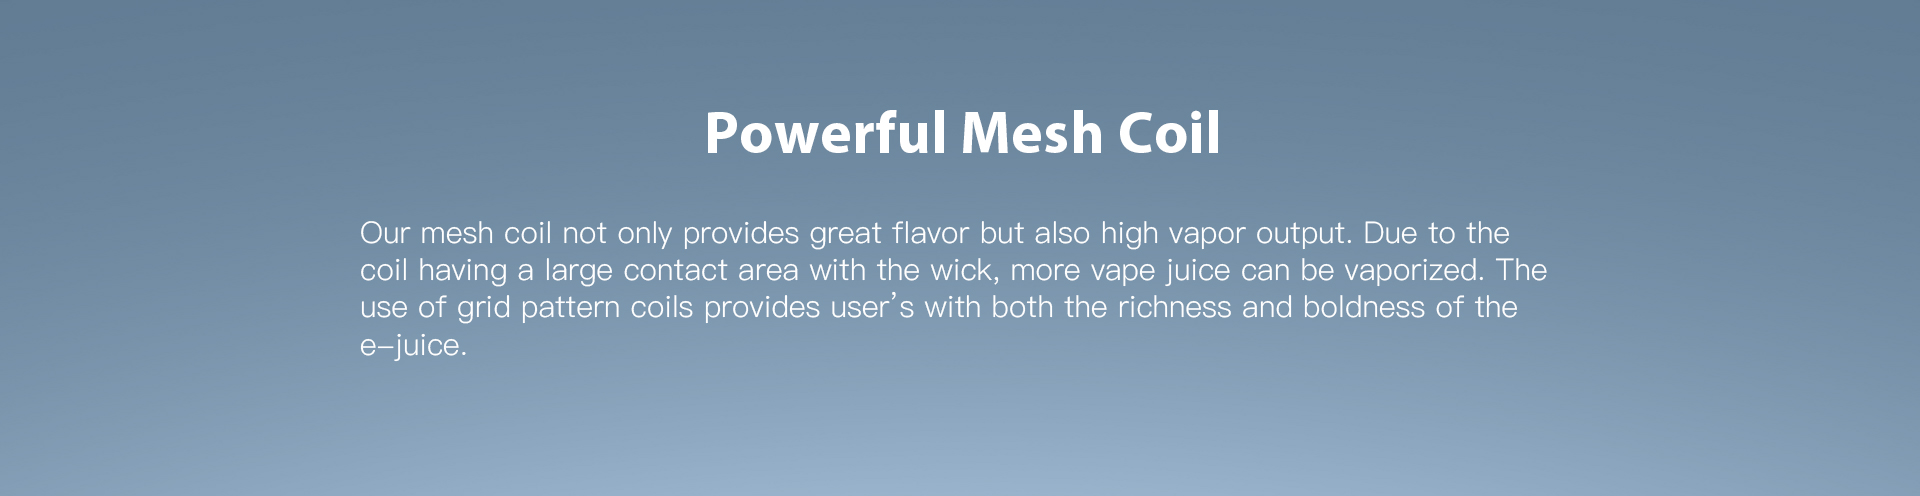 Powerful mesh coil